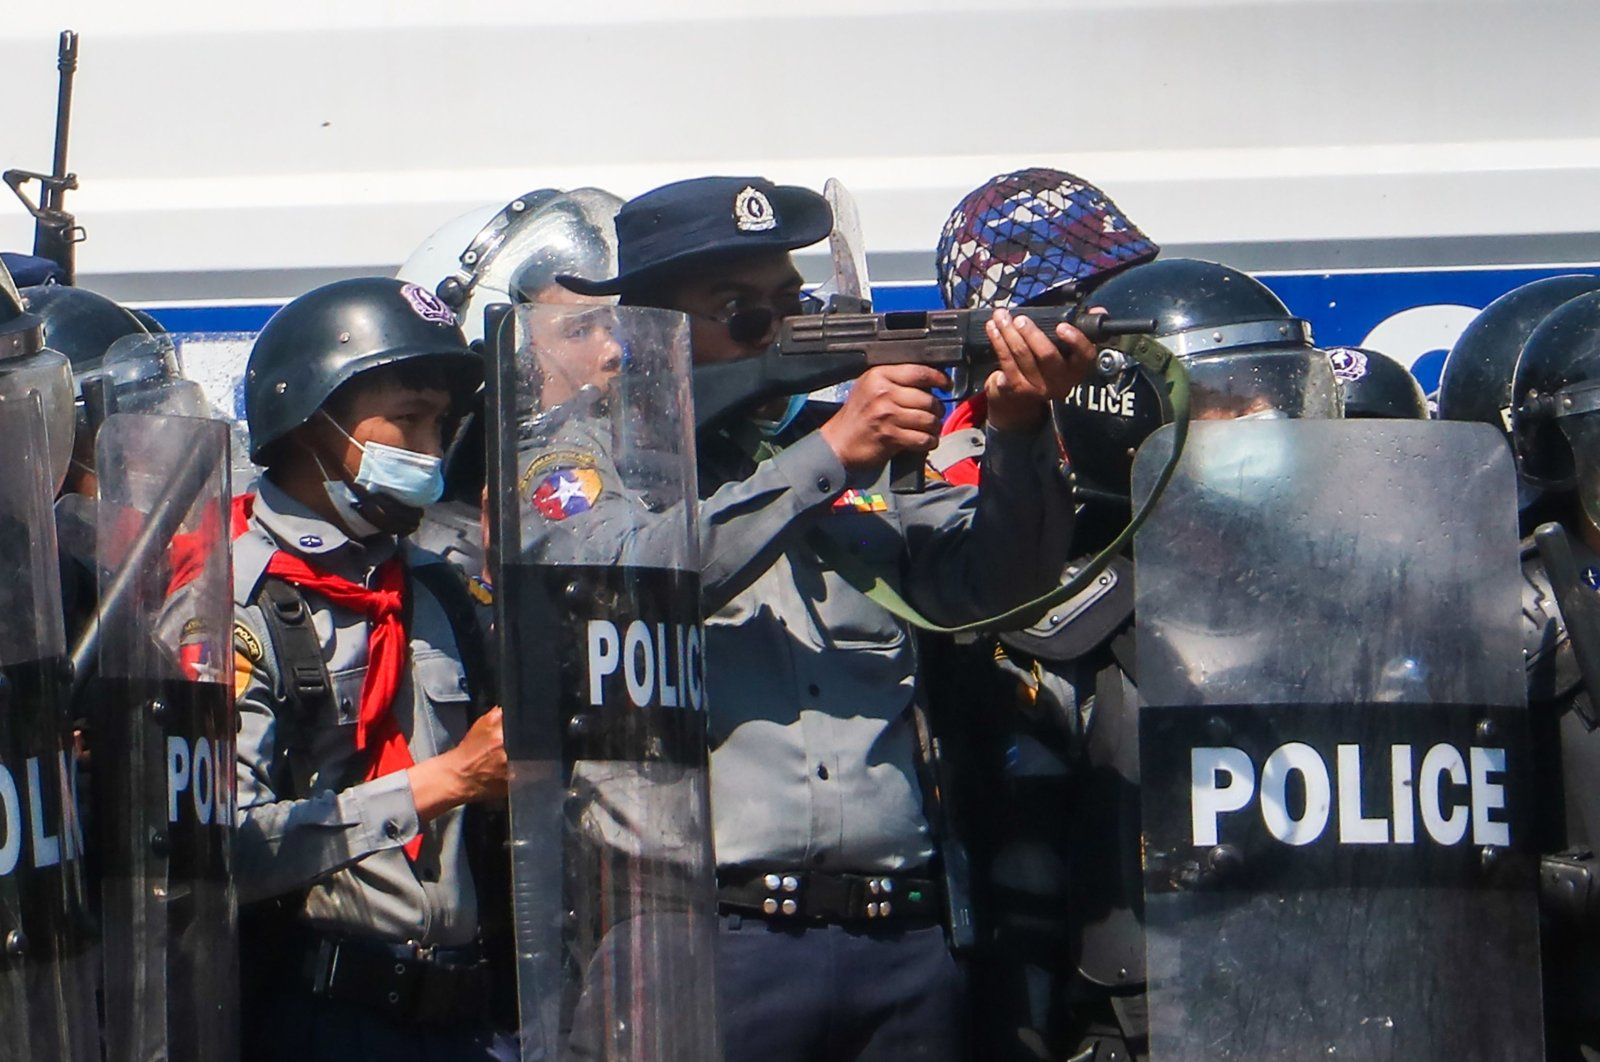 A police officer (C) aims a gun during clashes with protesters taking part in a demonstration against the military coup in Naypyitaw, Myanmar, Feb. 9, 2021. (AFP Photo)